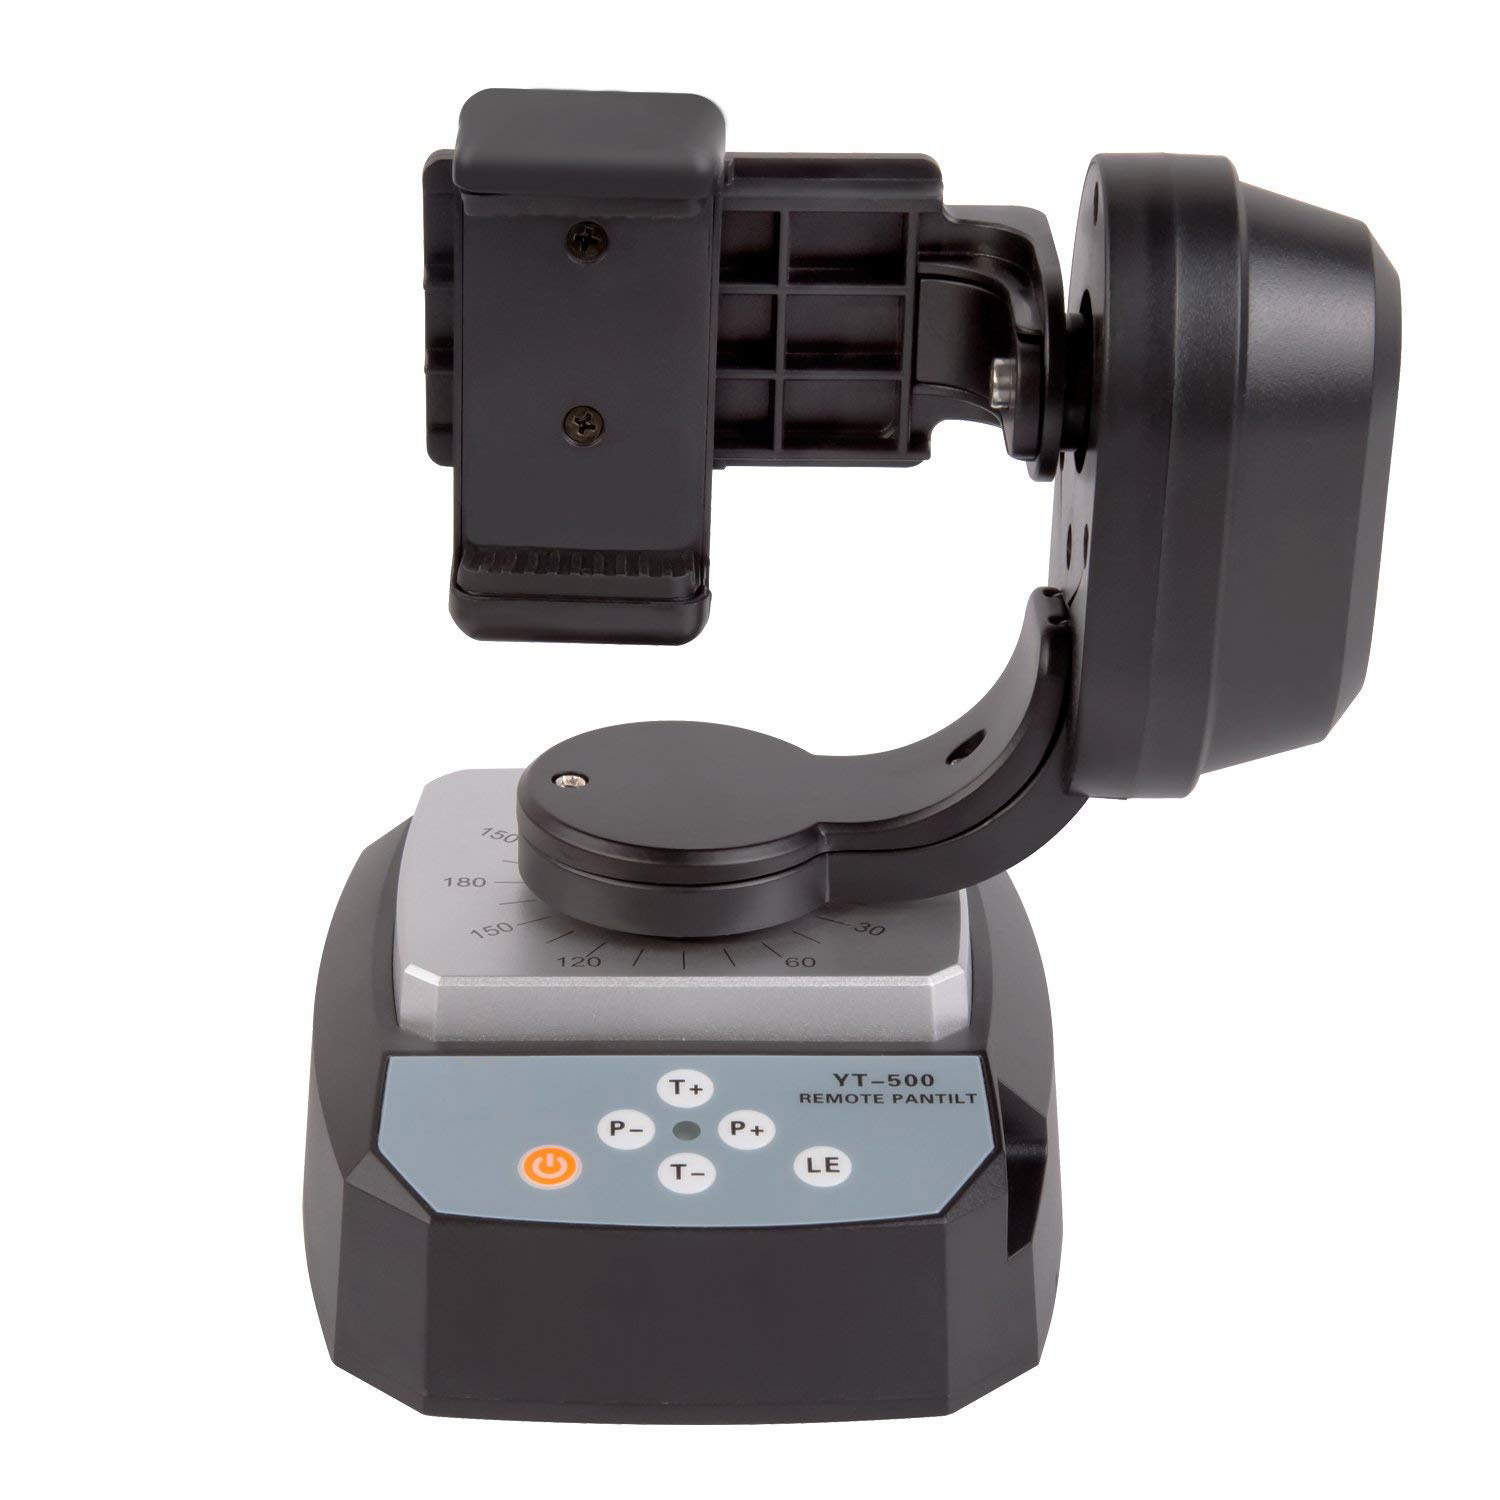 ZIFON YT 500 Automatic Remote Control Pan Tilt Automatic Motorized Rotating Video Tripod Head Max for